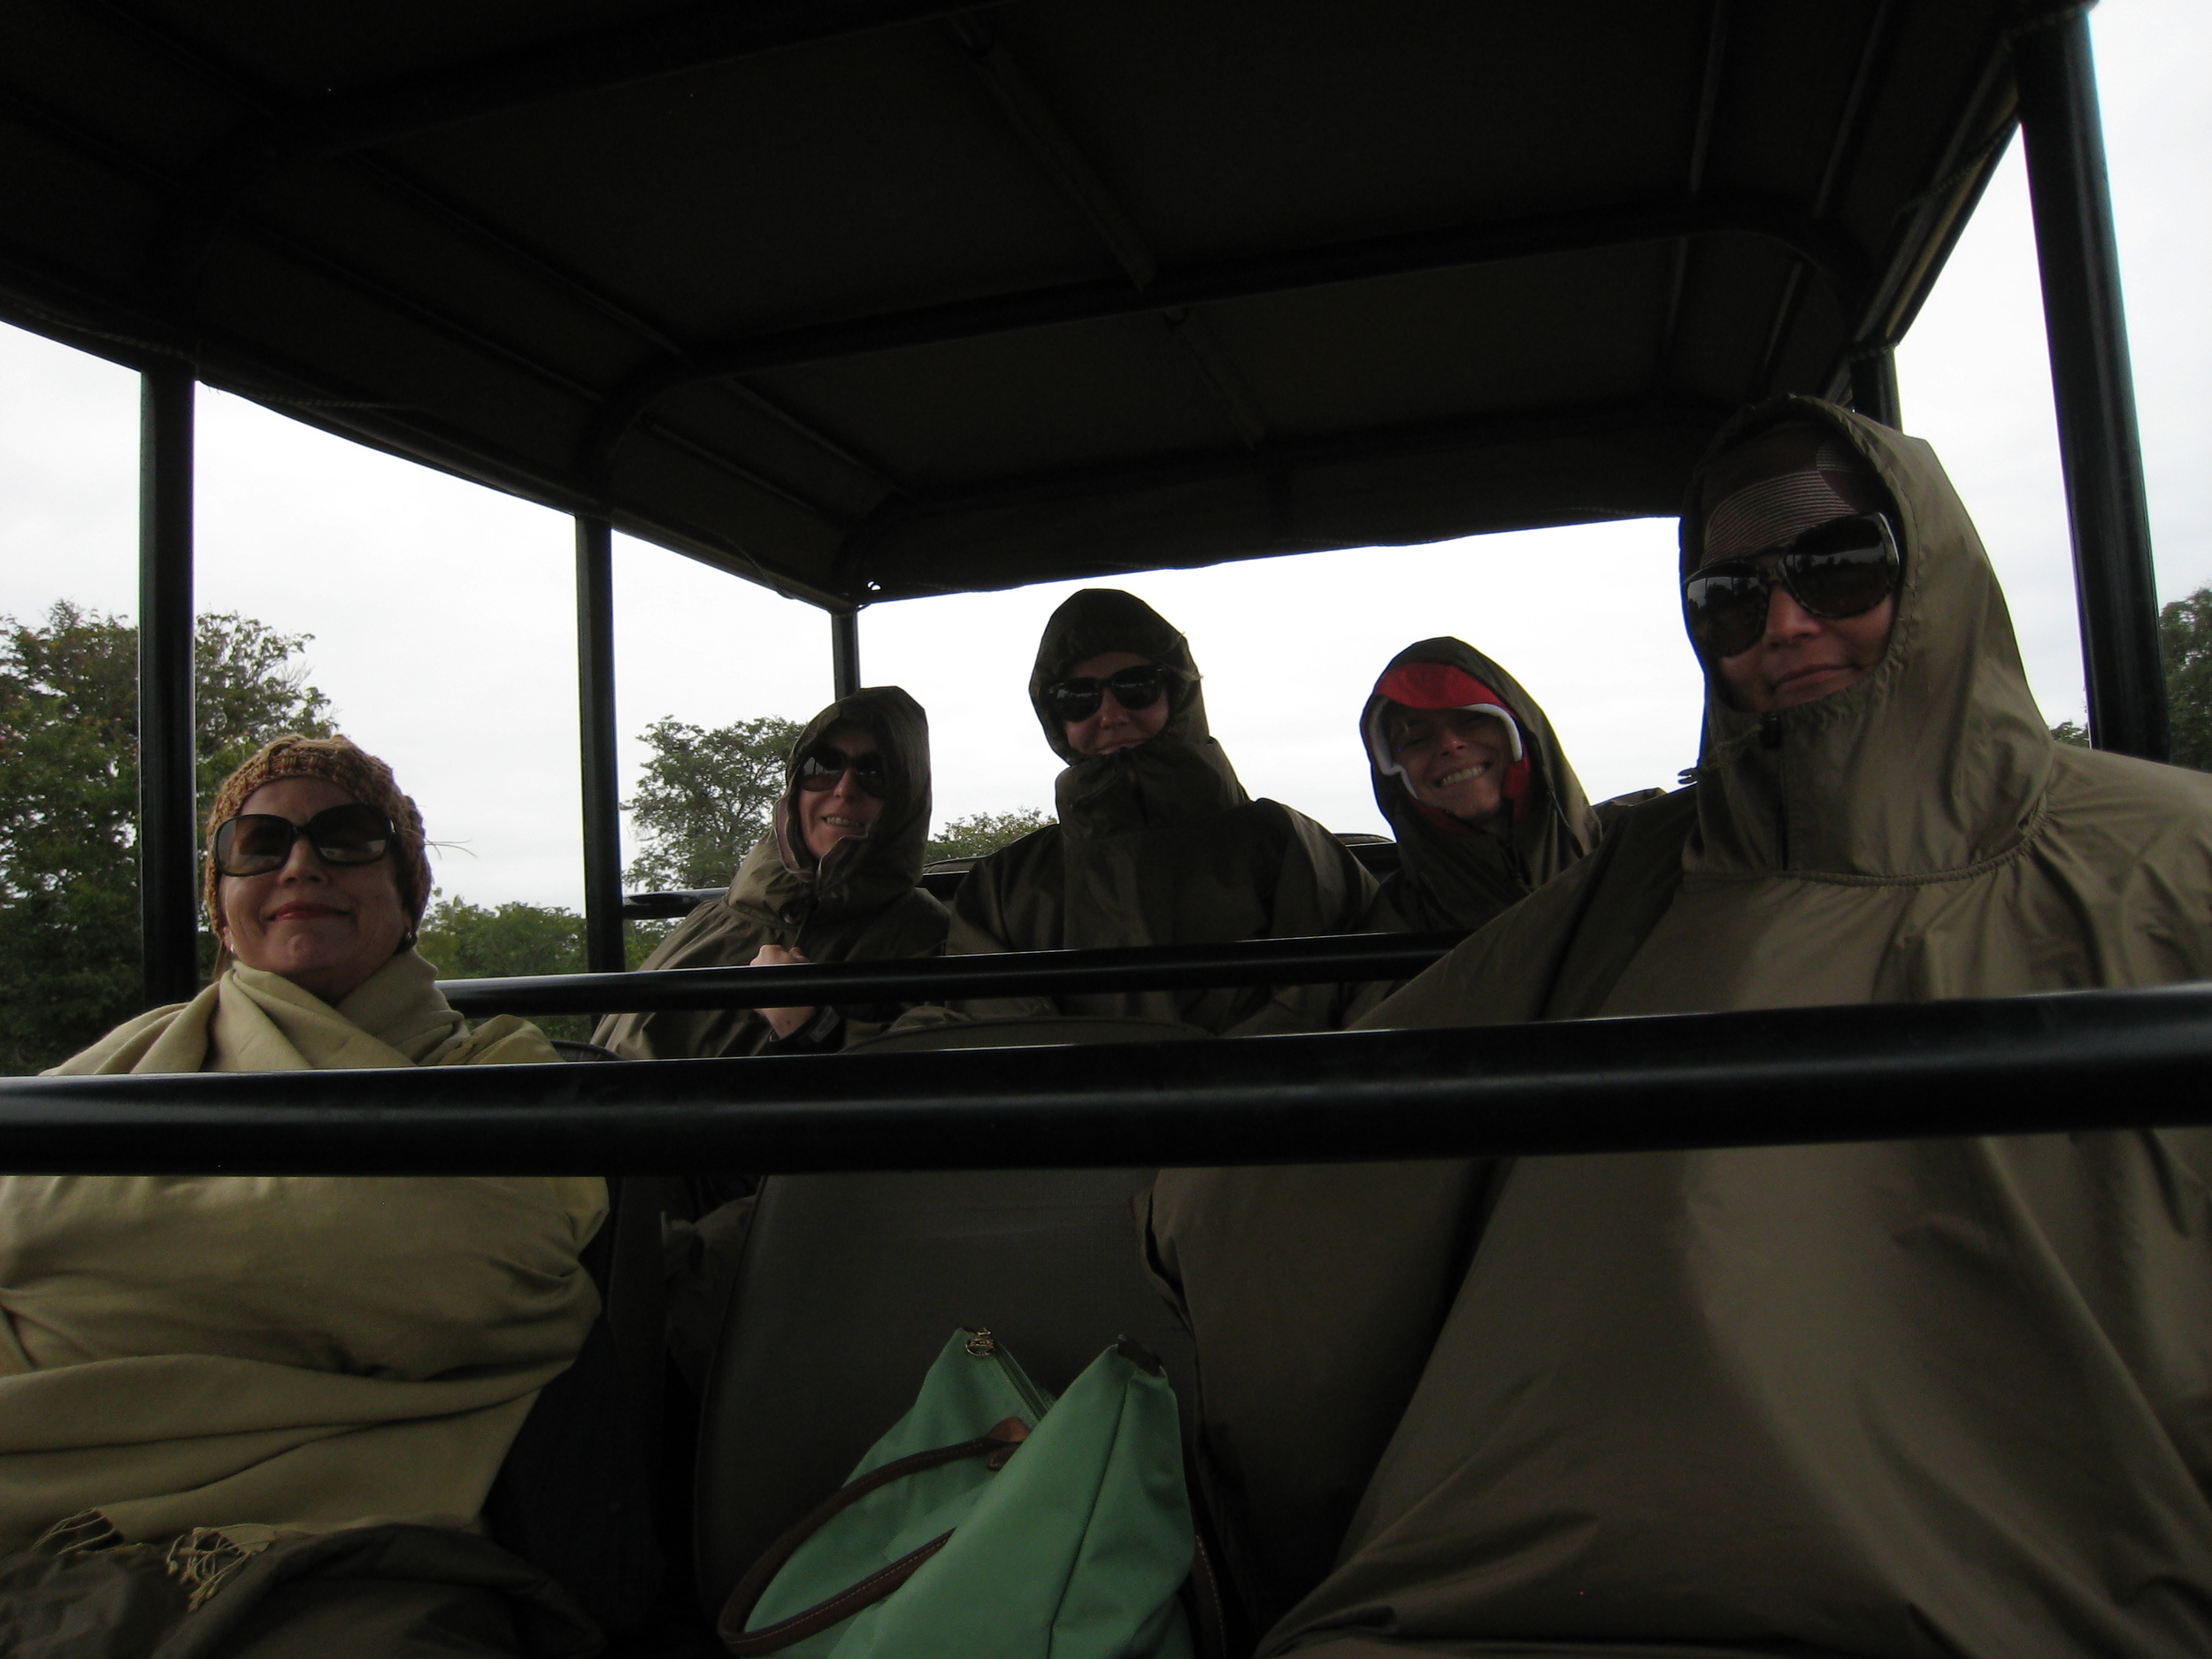 And that's how we looked during the ride to the boat...